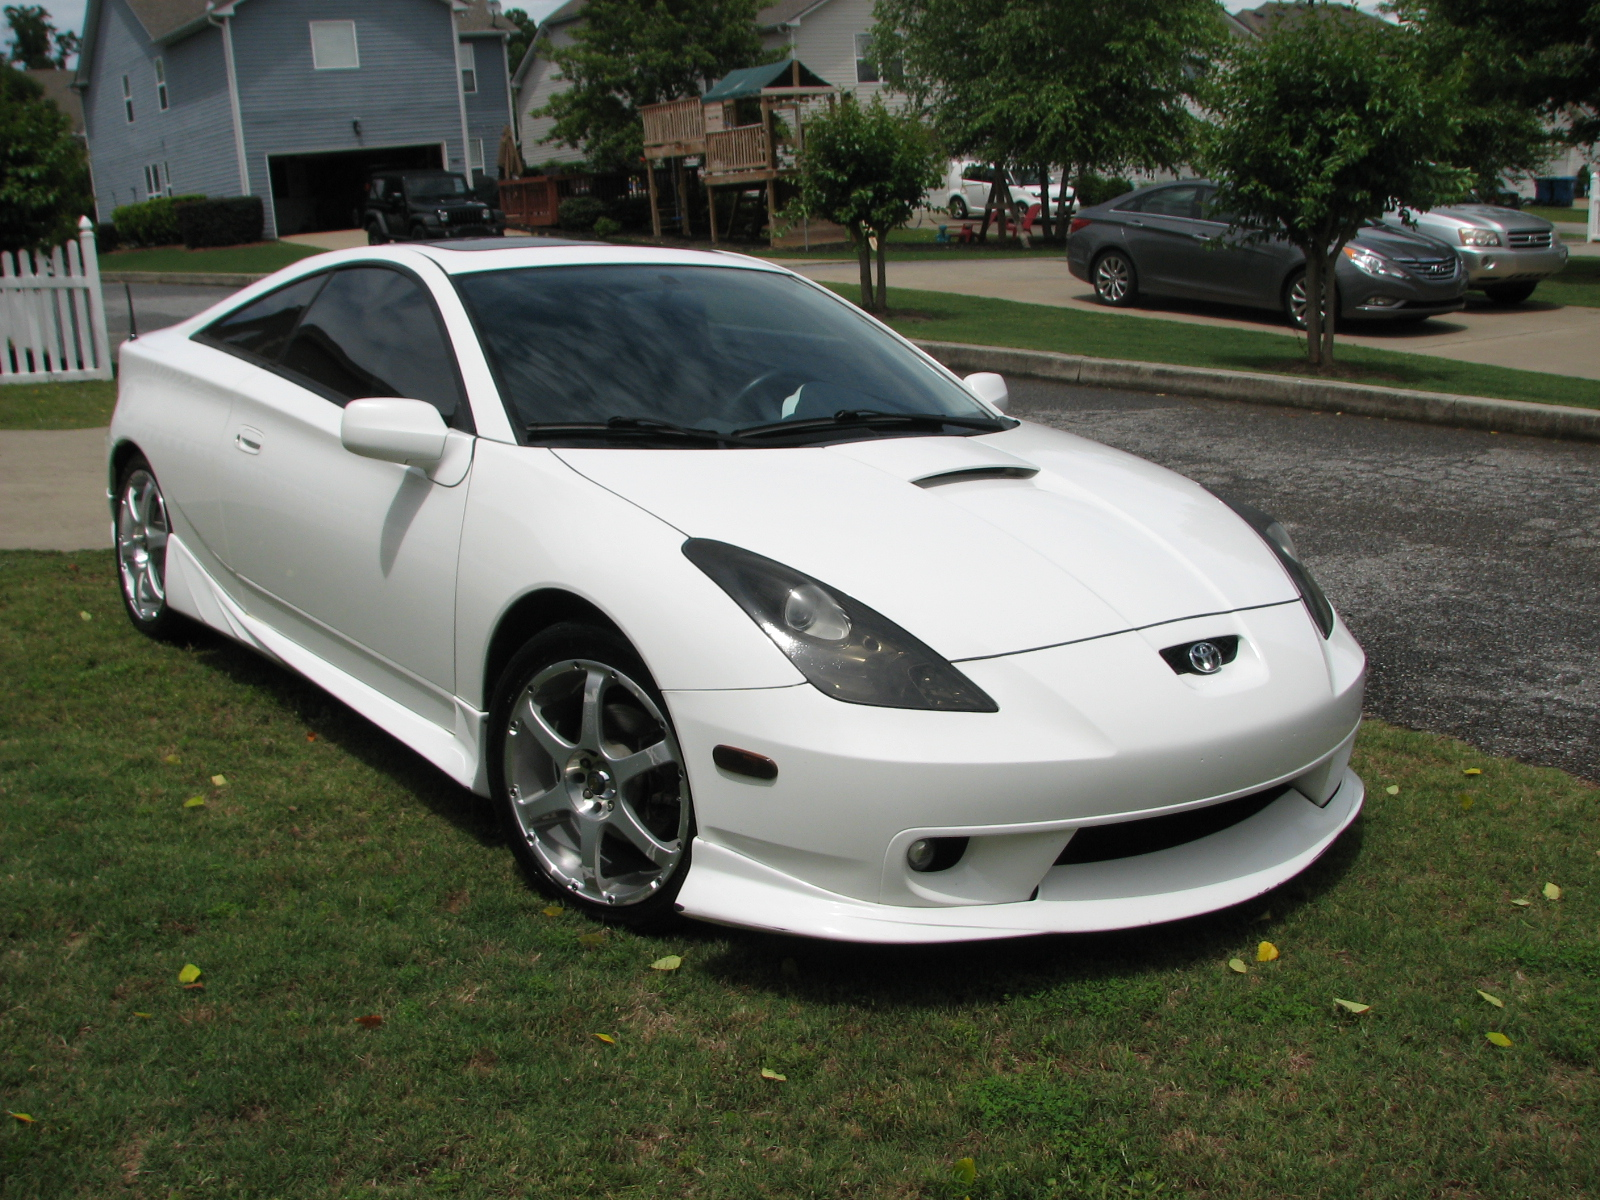 2003 toyota celica pictures cargurus. Black Bedroom Furniture Sets. Home Design Ideas